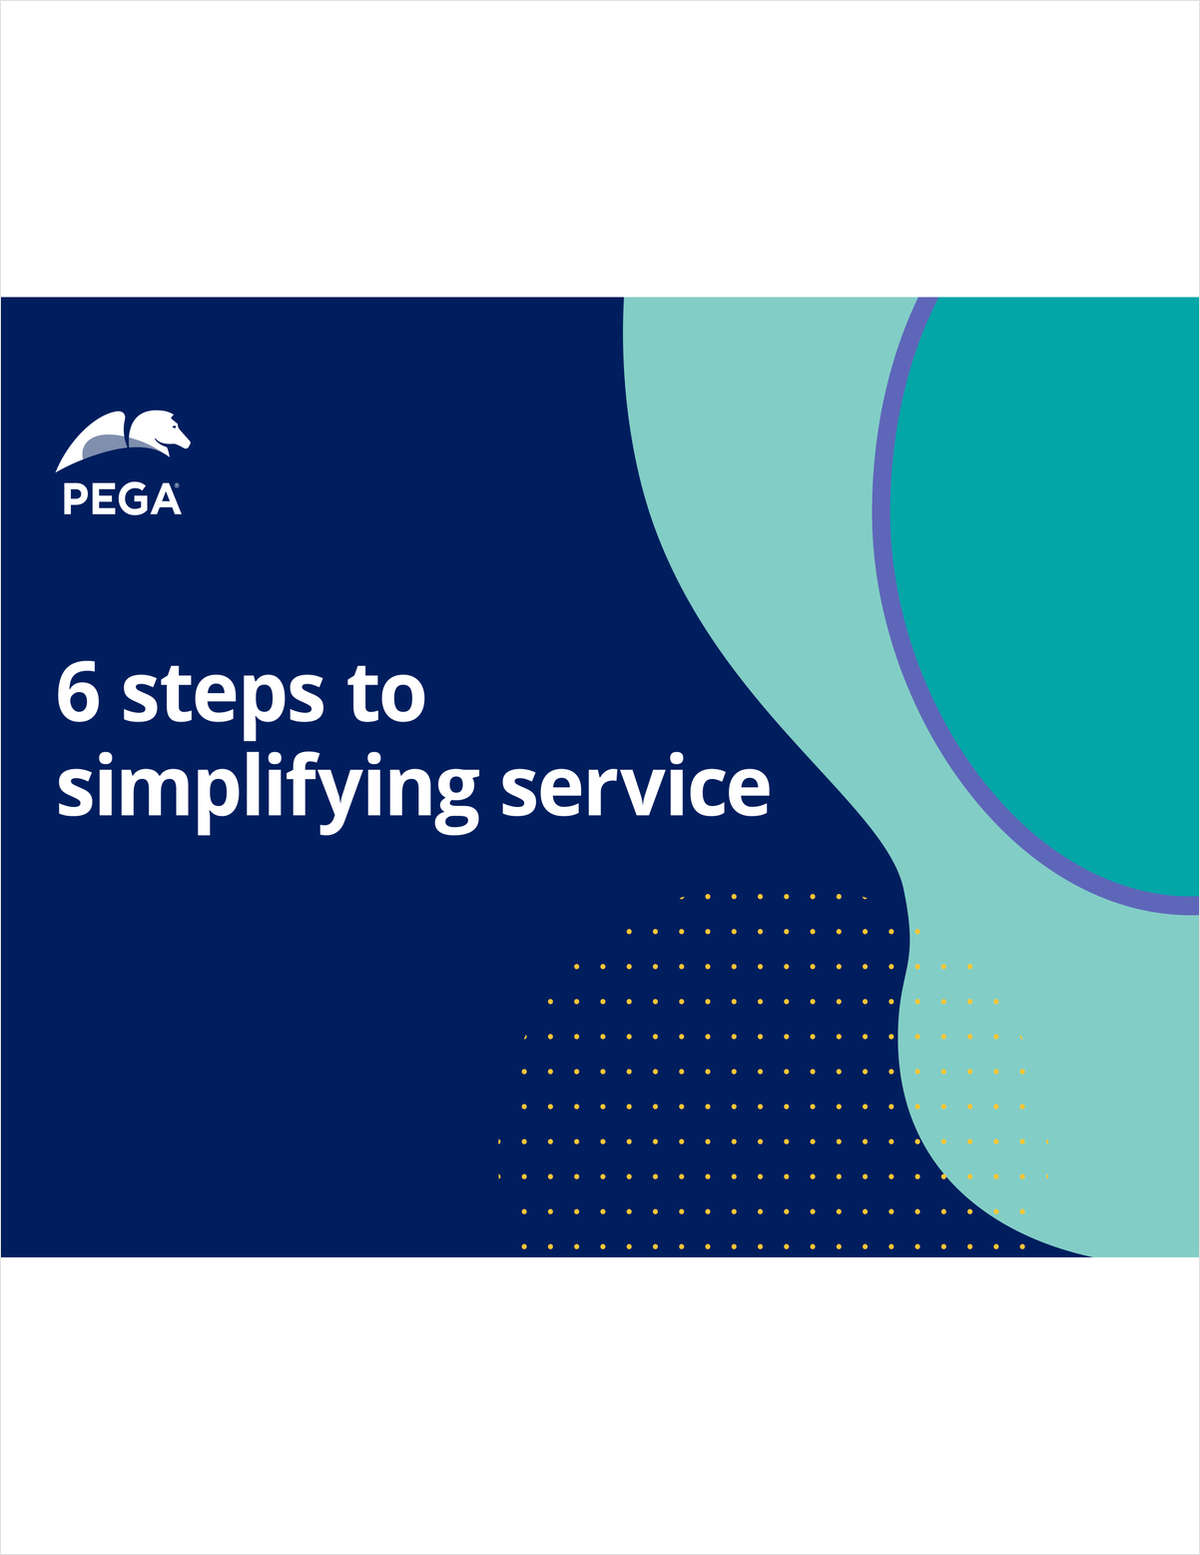 Easier, faster, more personalized service matters